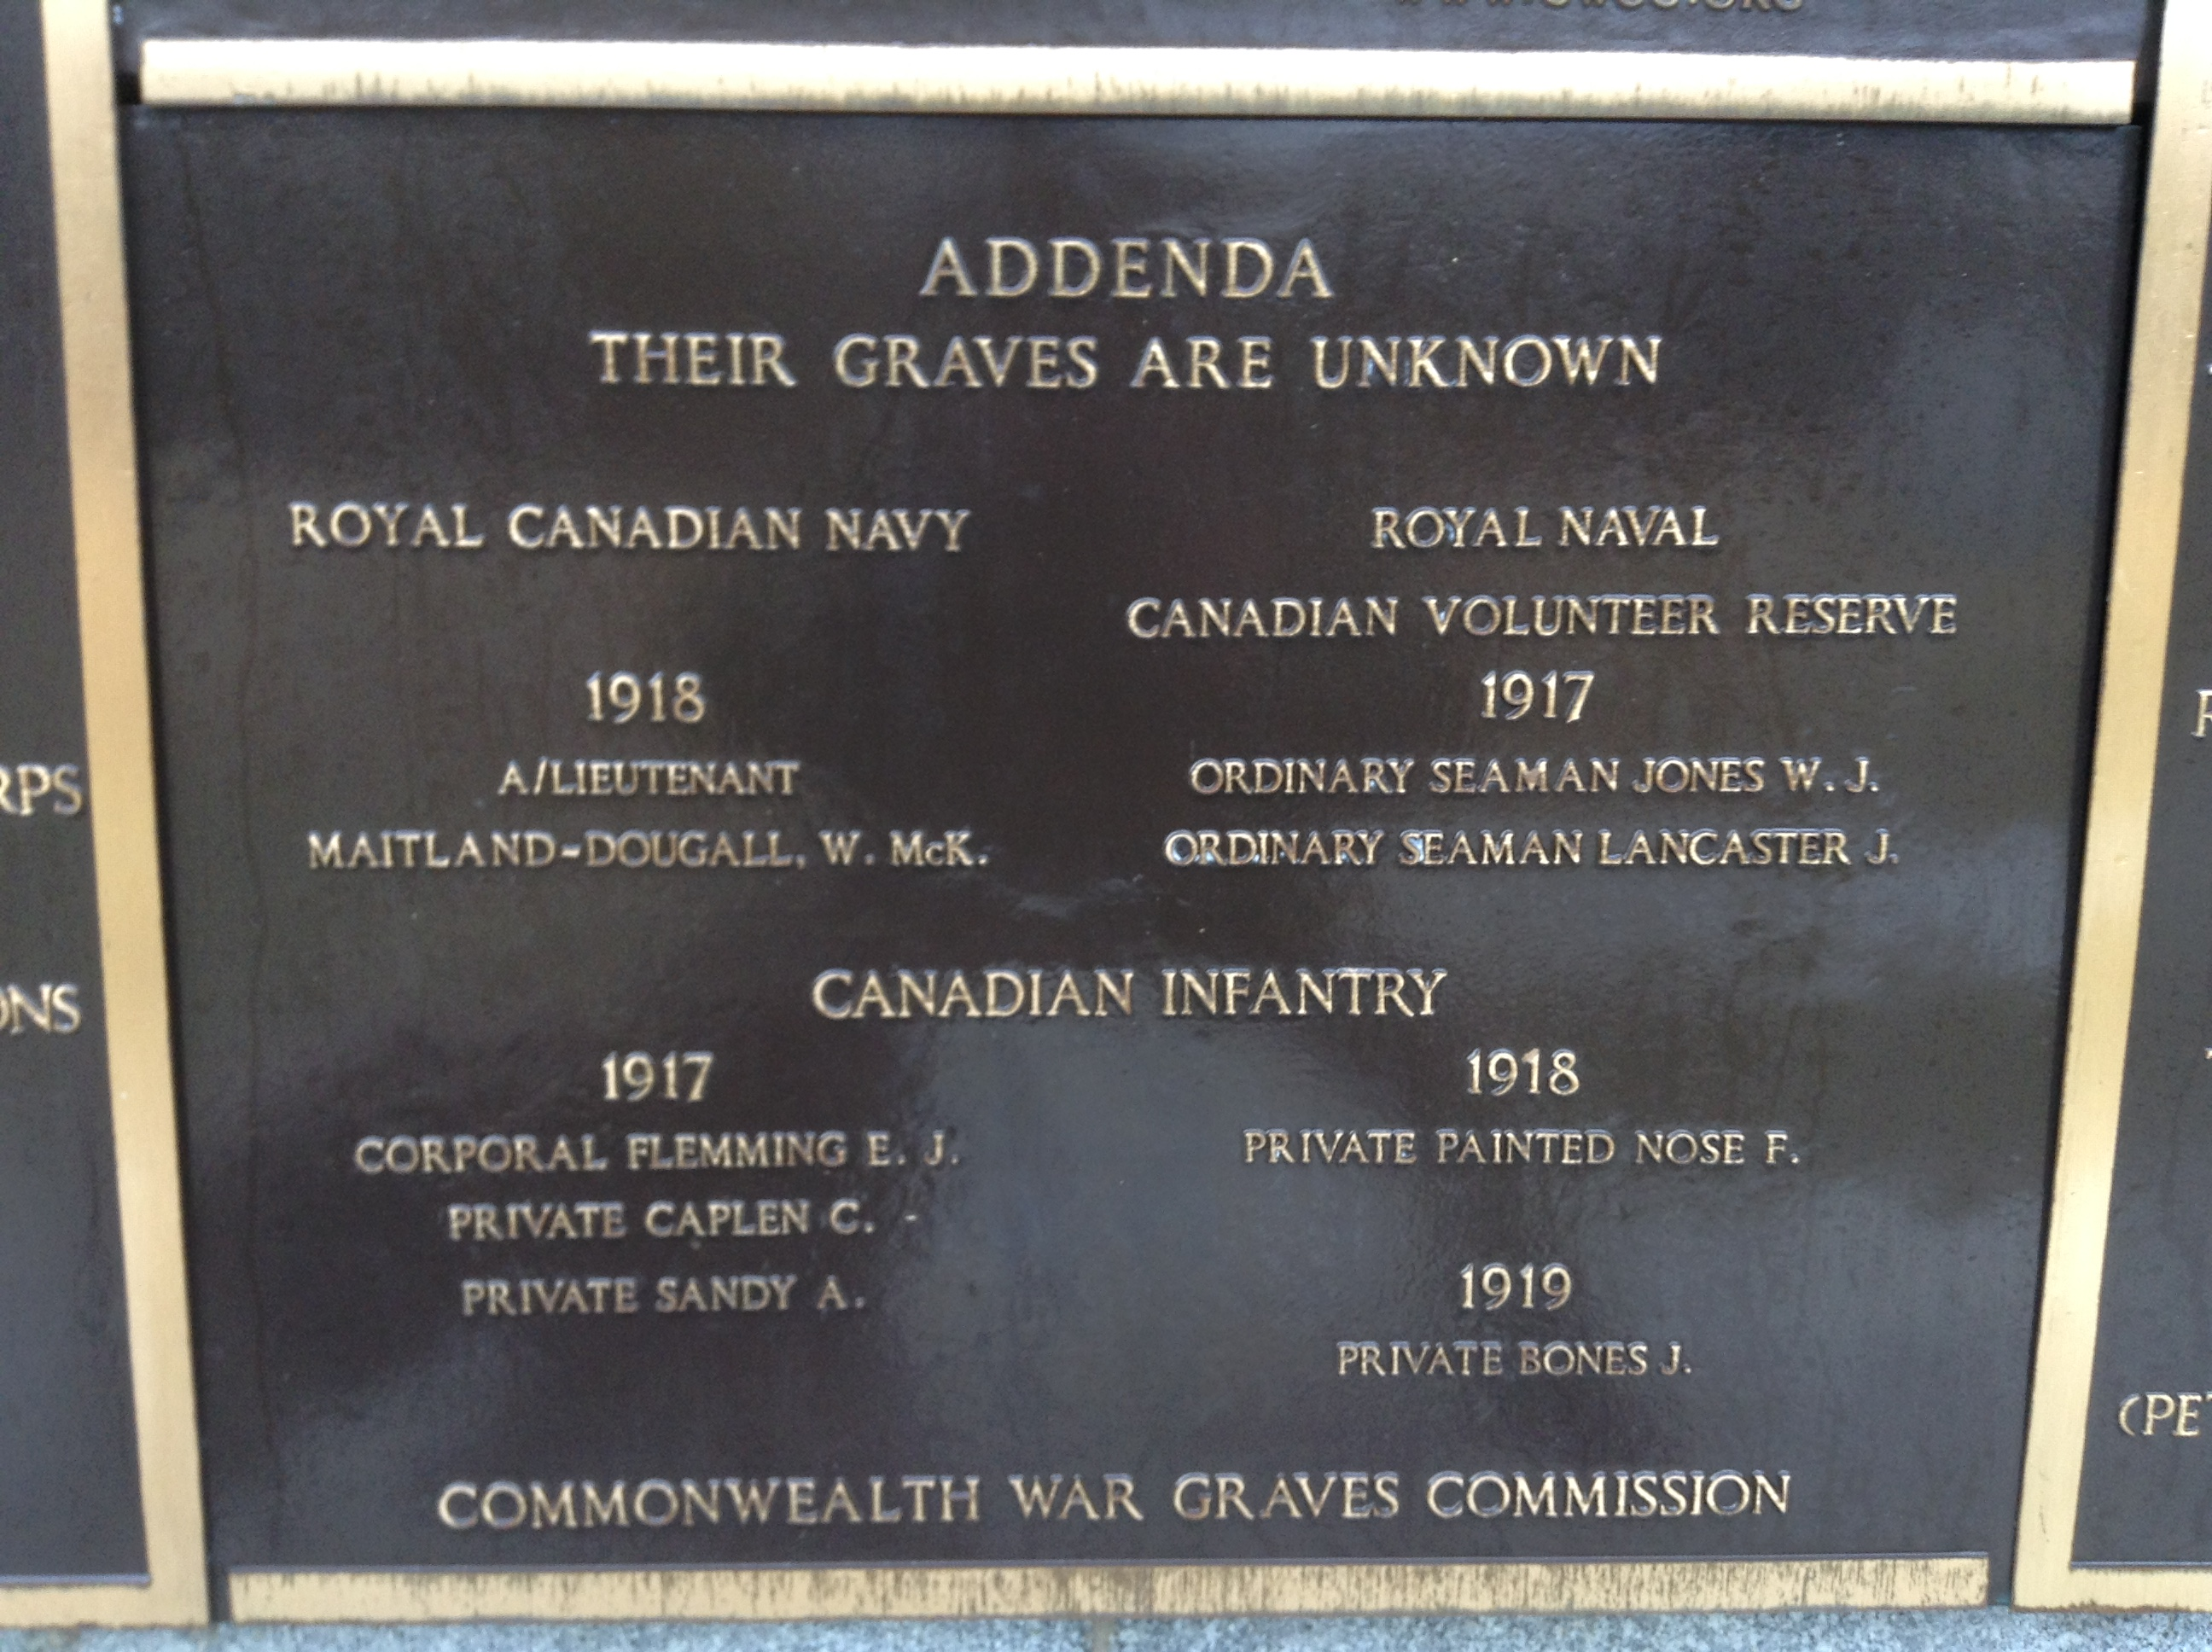 Memorial– The panel on the Halifax Memorial at Point Pleasant in Halifax, Nova Scotia, Canada on which William McKinstry Maitland-Dougall's name is inscribed. Image taken 9 February 2018 by Tom Tulloch.